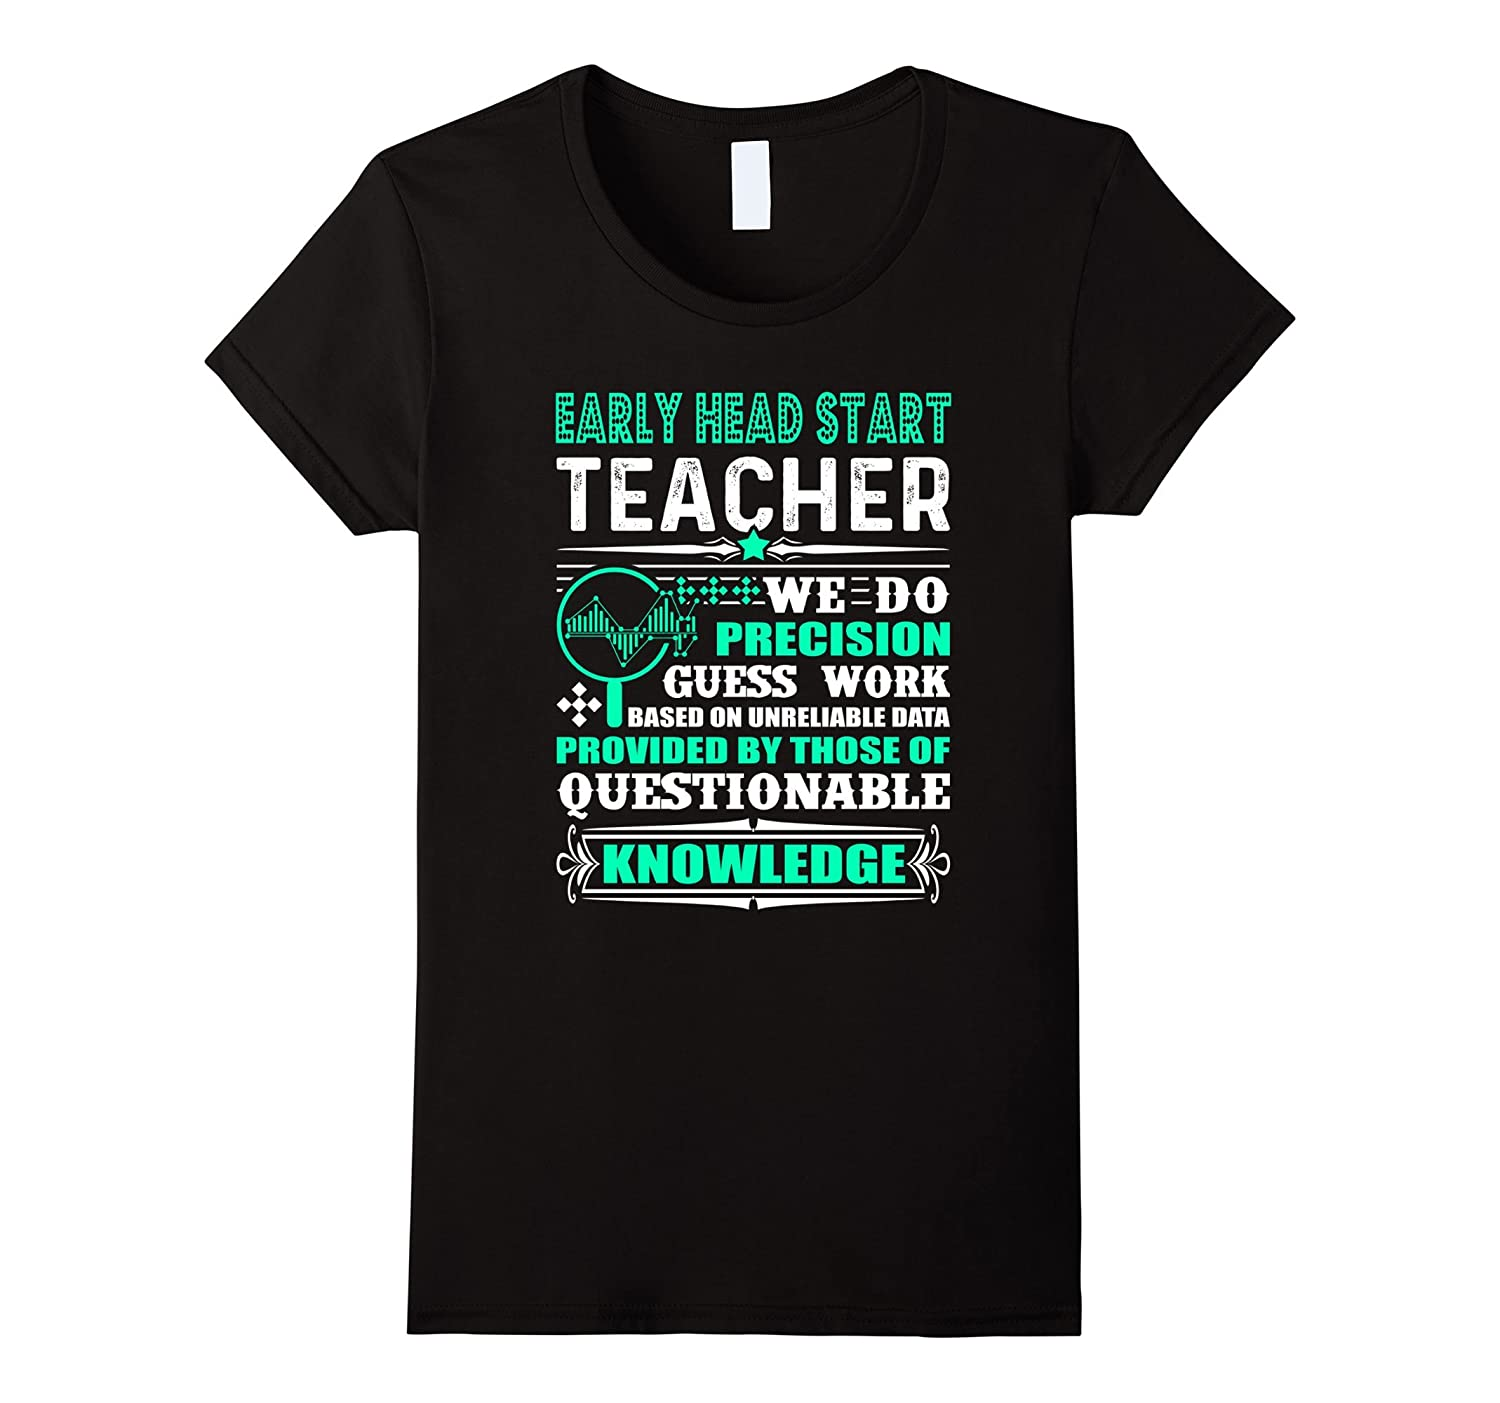 Early Head Start Teacher Shirt For Women And Men